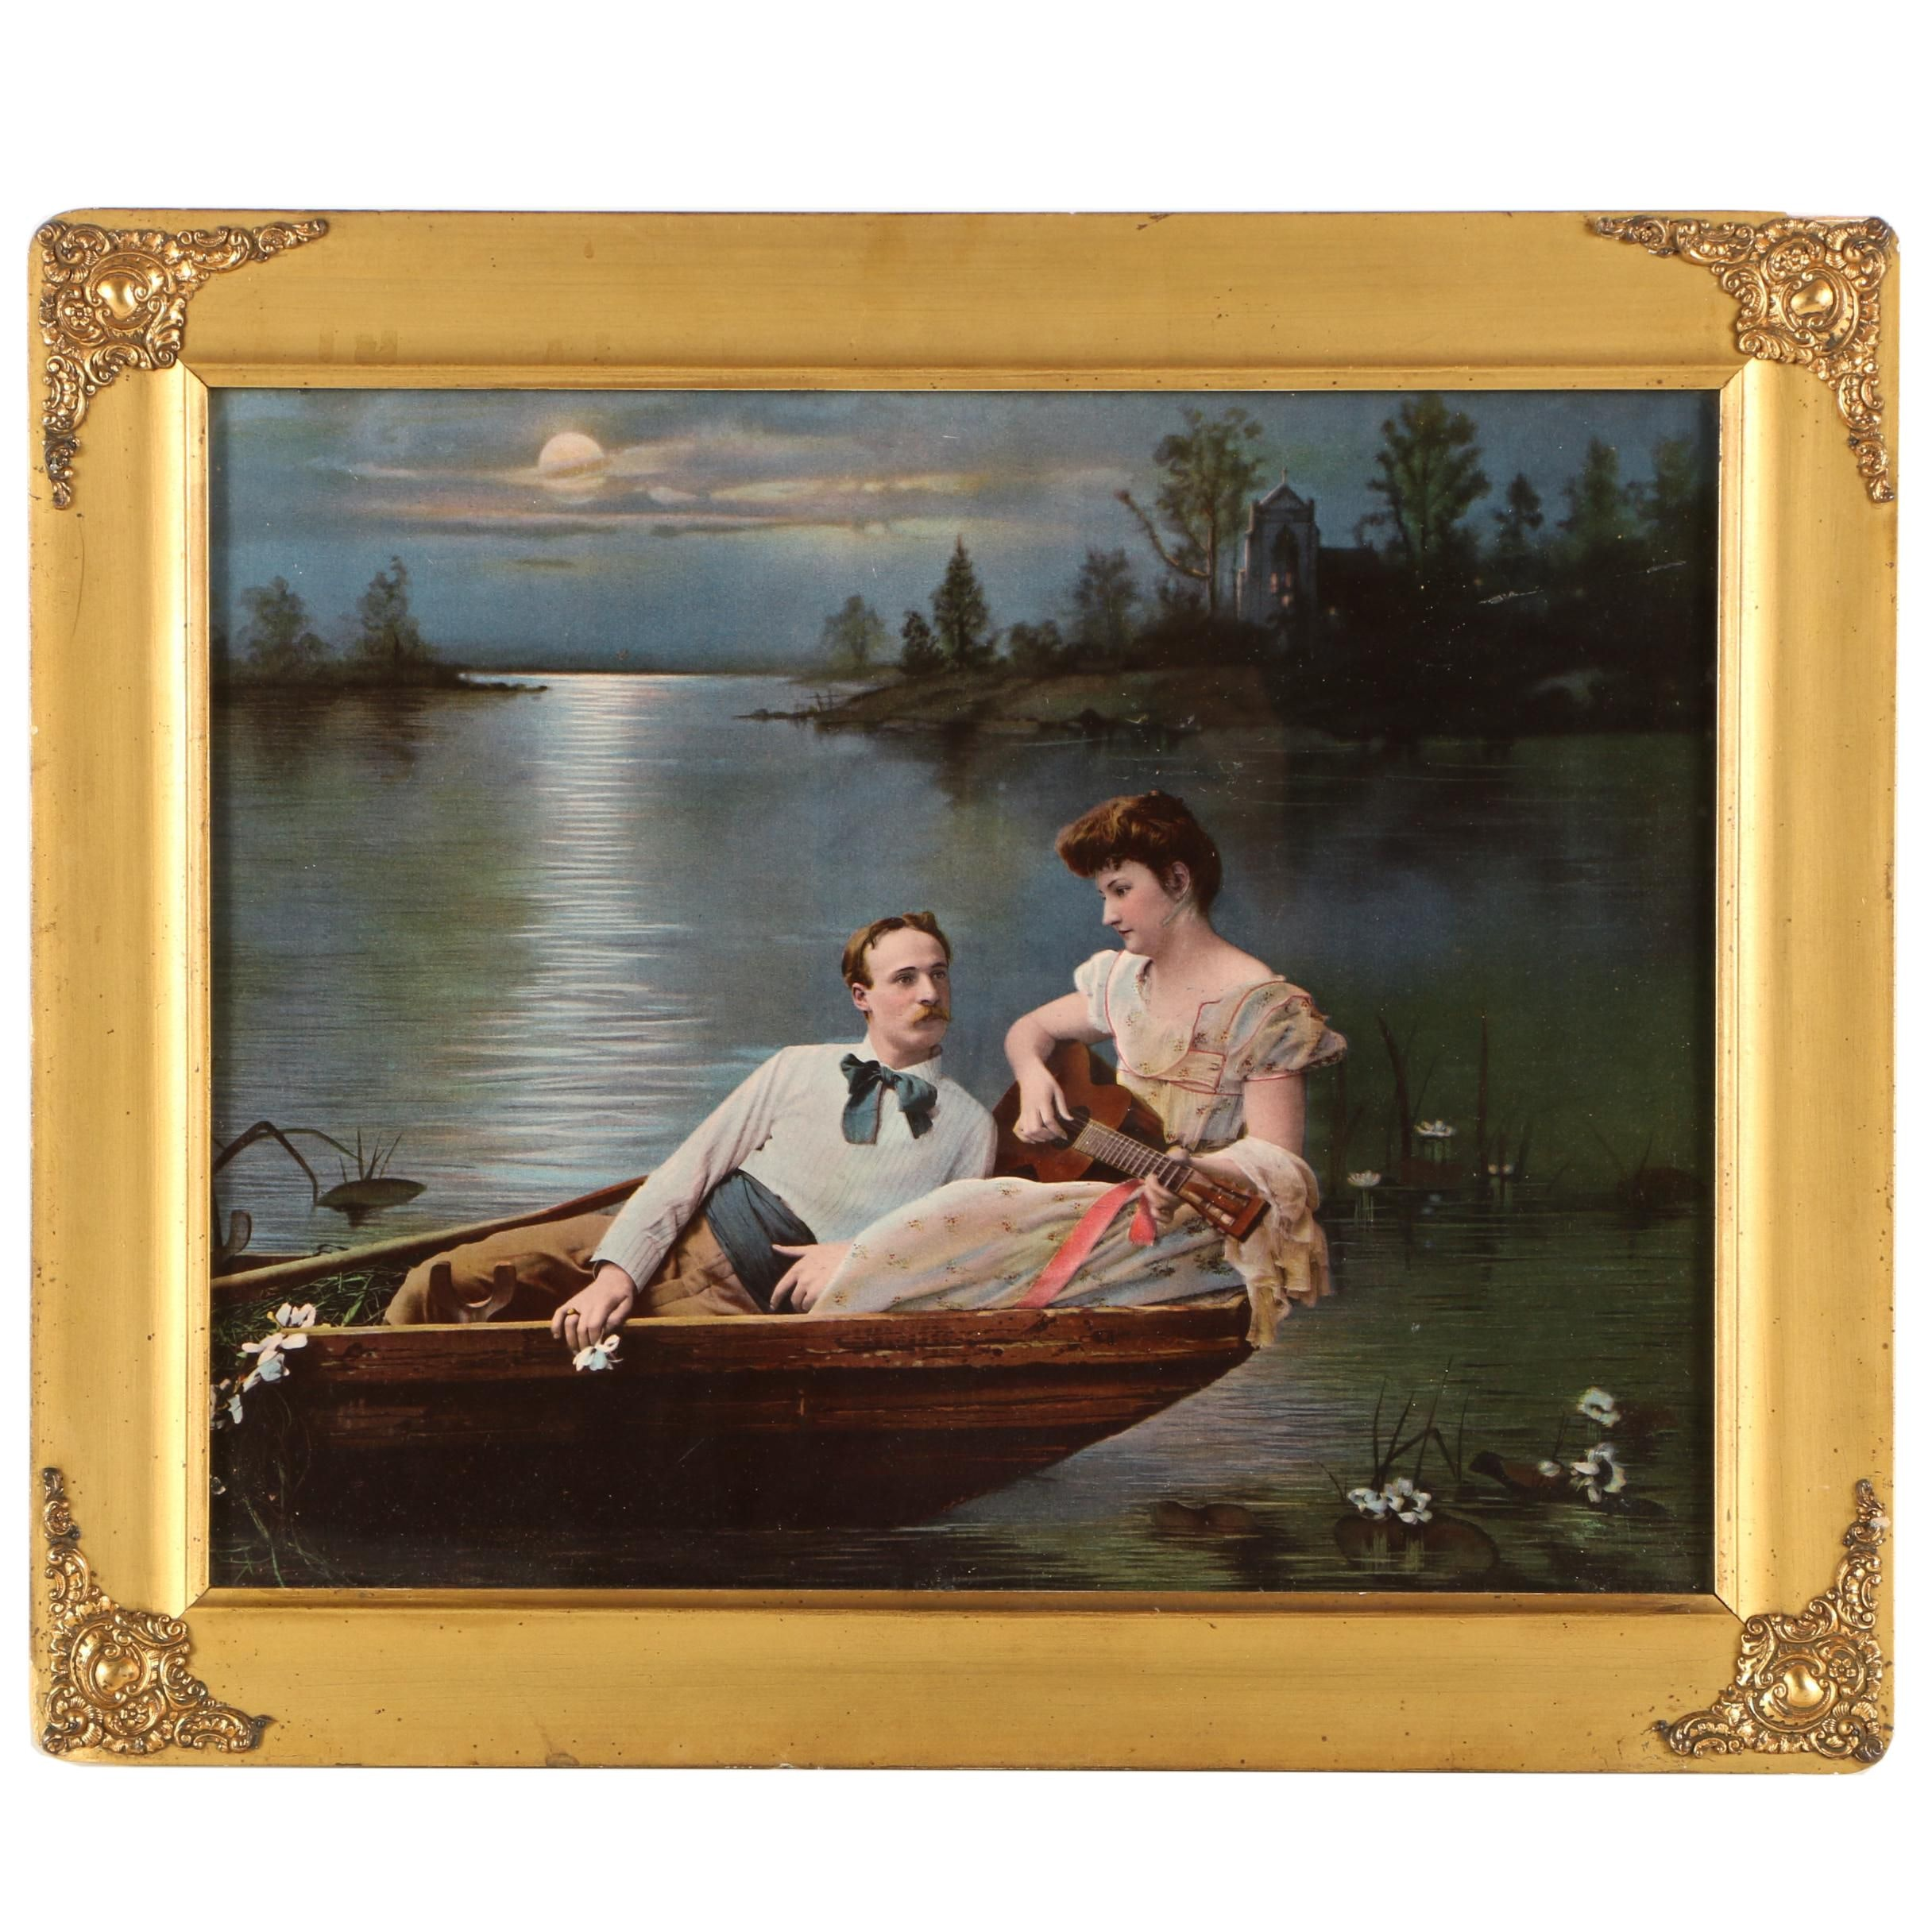 The Ullman MFG Co. 1902 Color Halftone of a Man and Woman in a Rowboat